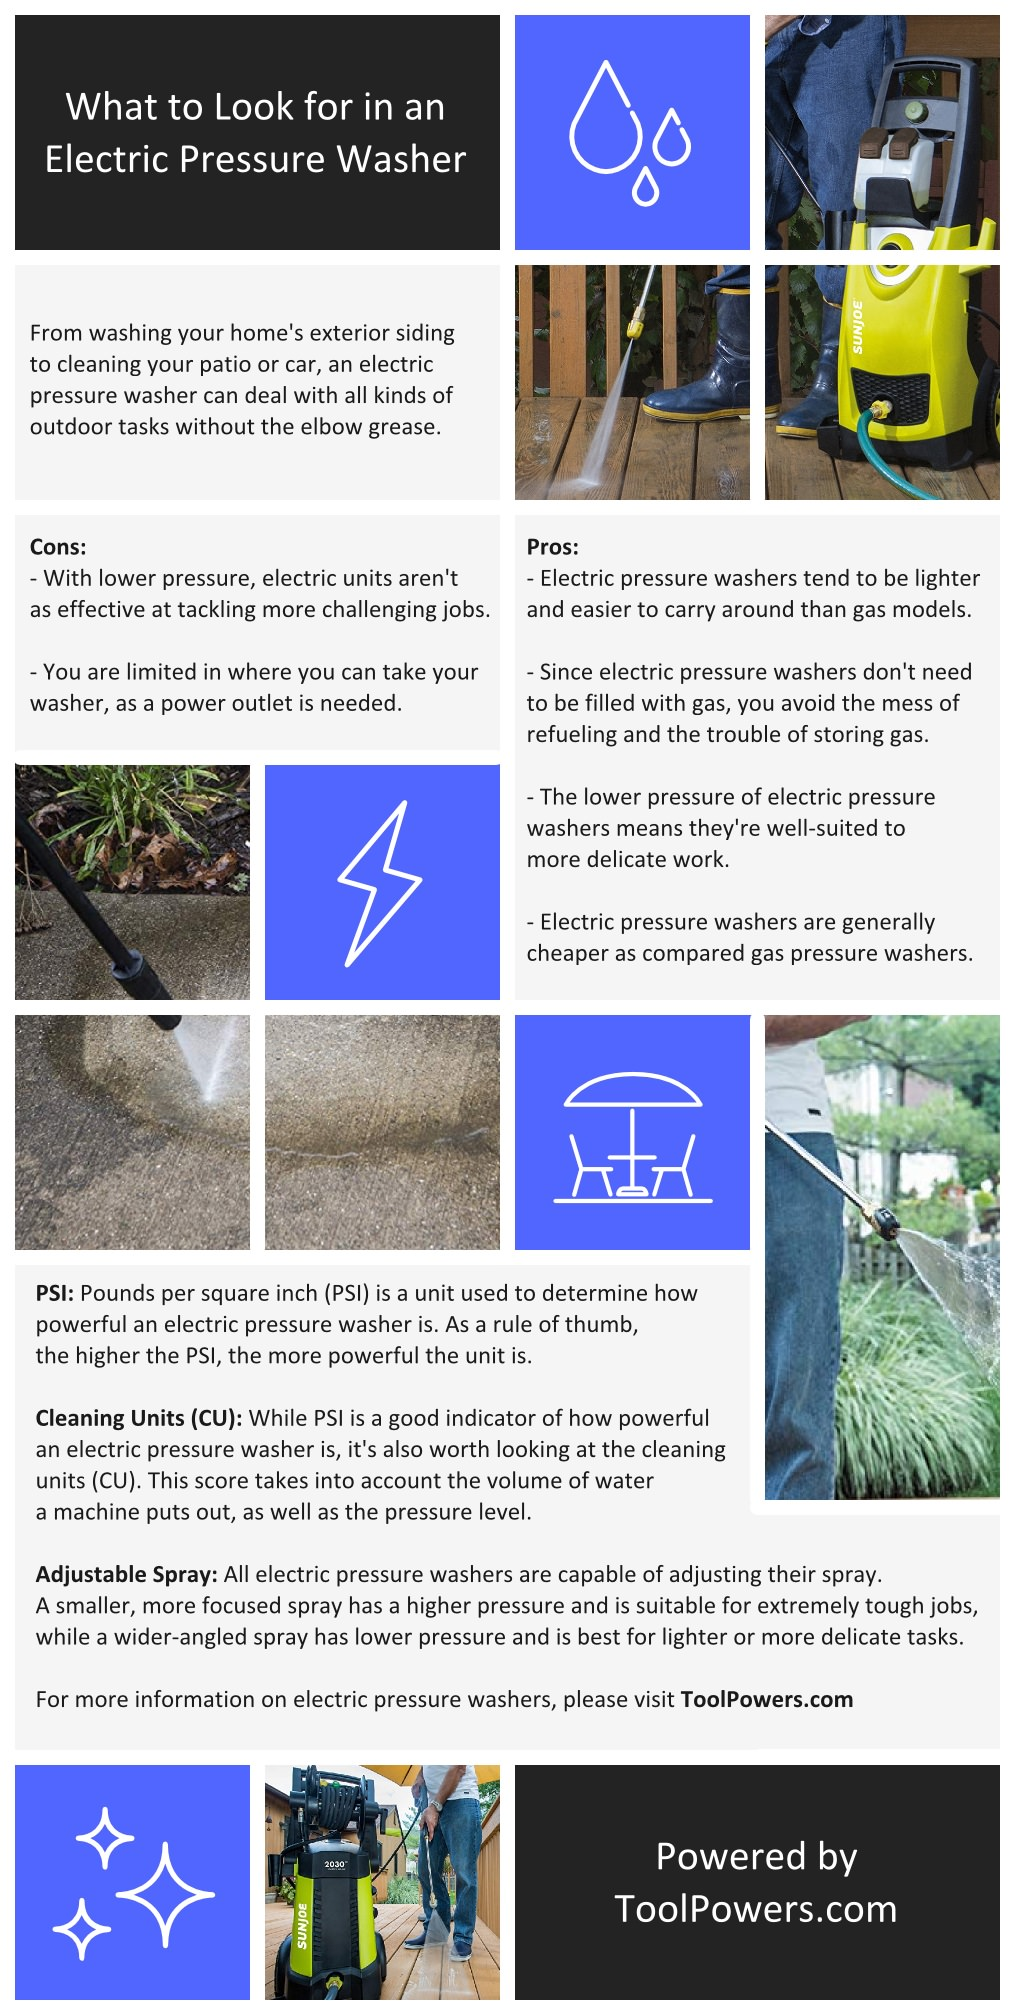 Infographic : What to Look for in an Electric Pressure Washer